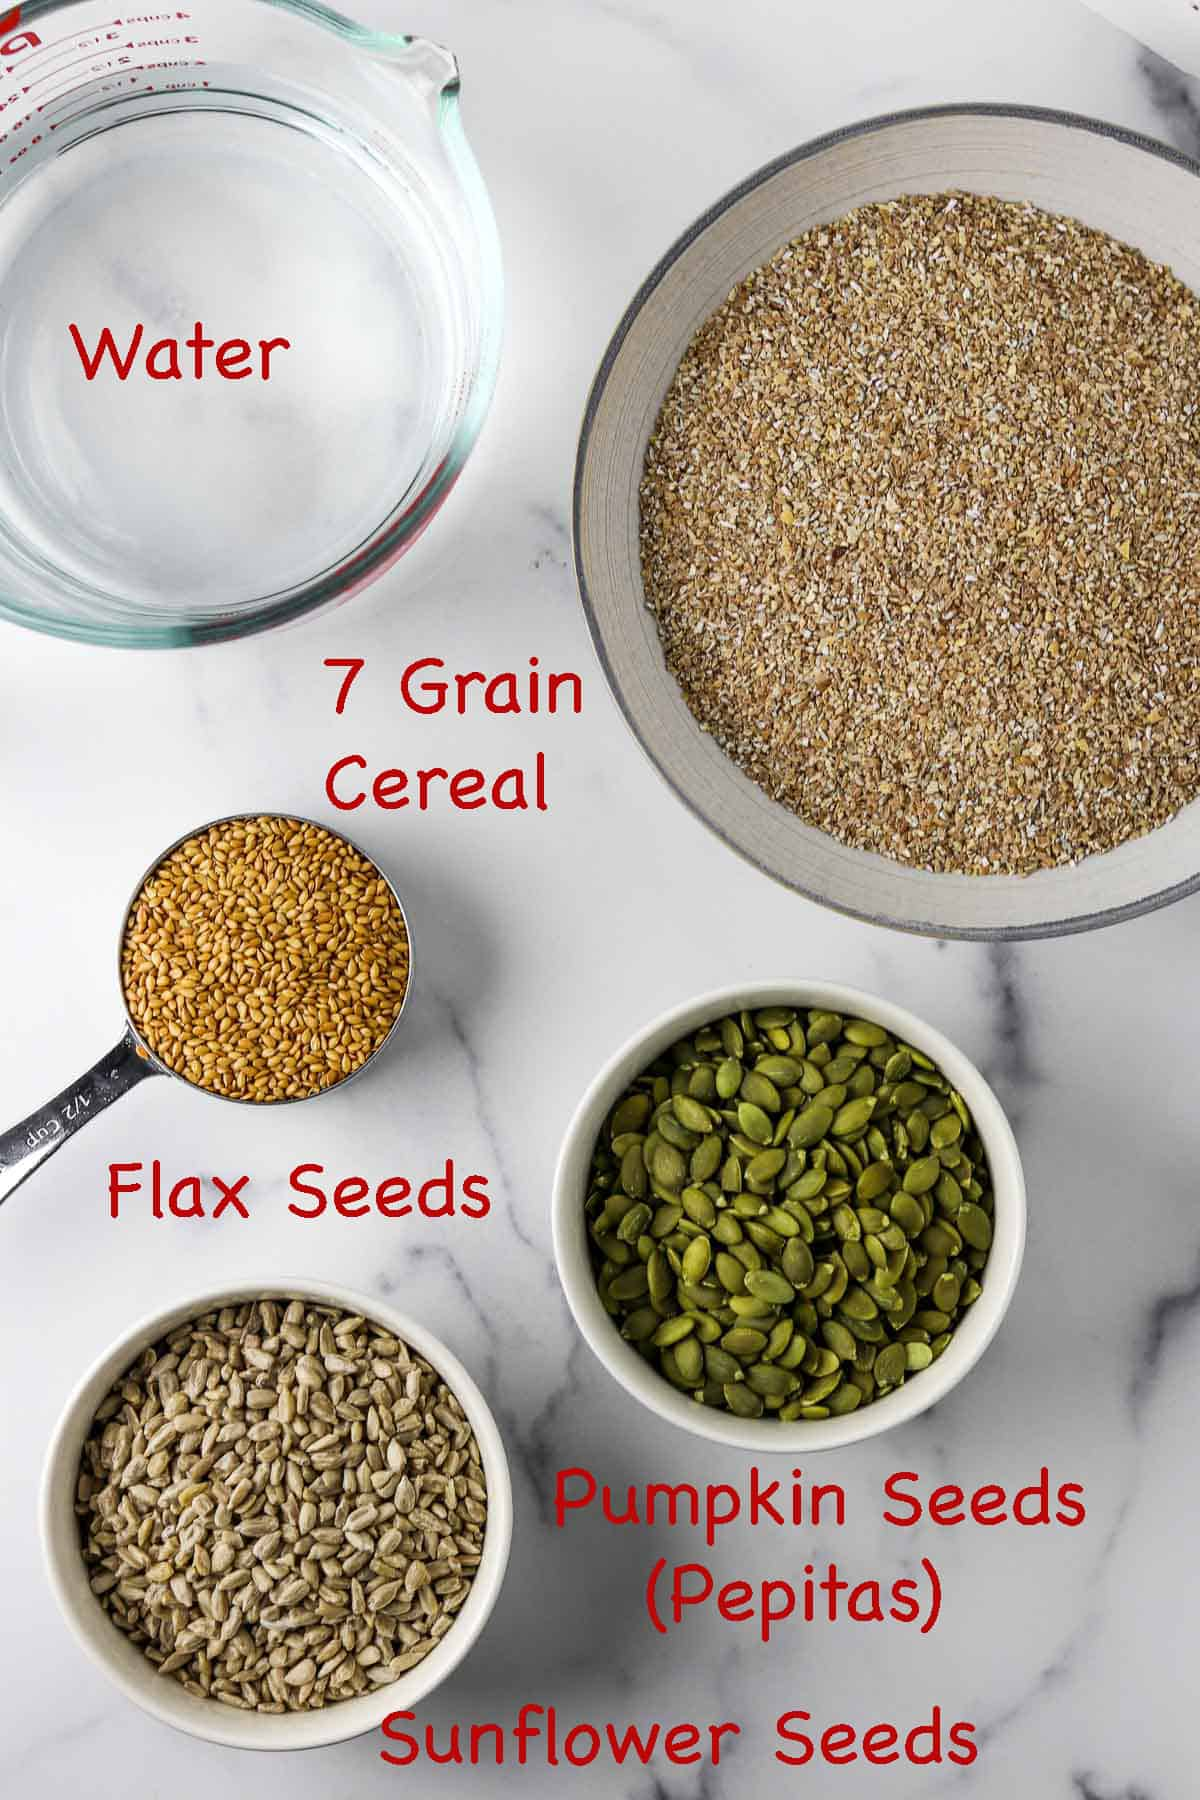 Labeled ingredients for soaker for Danish rye bread.